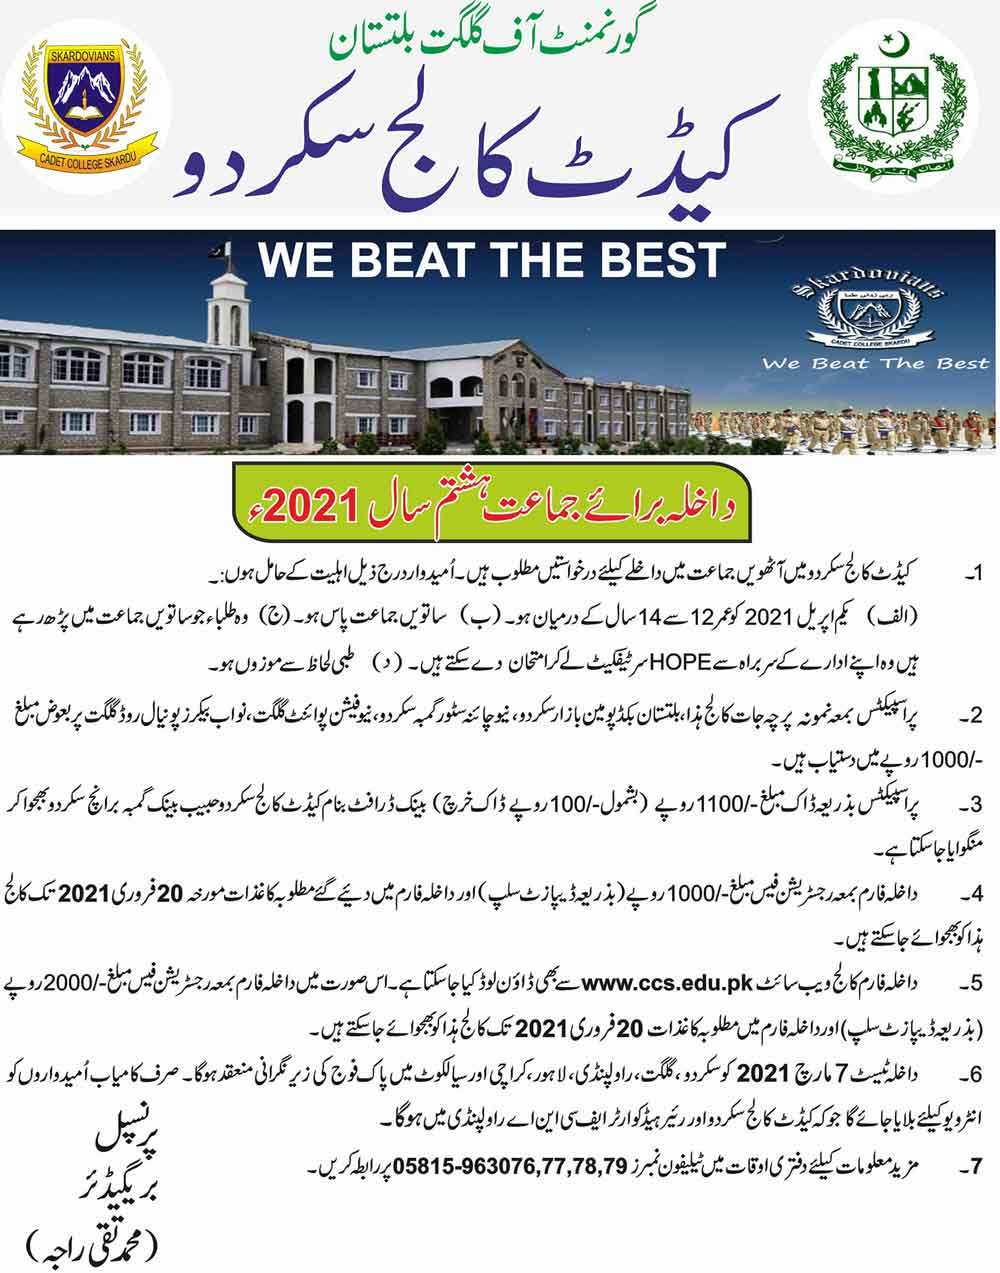 Cadet-College-Skardu-Admission-2021